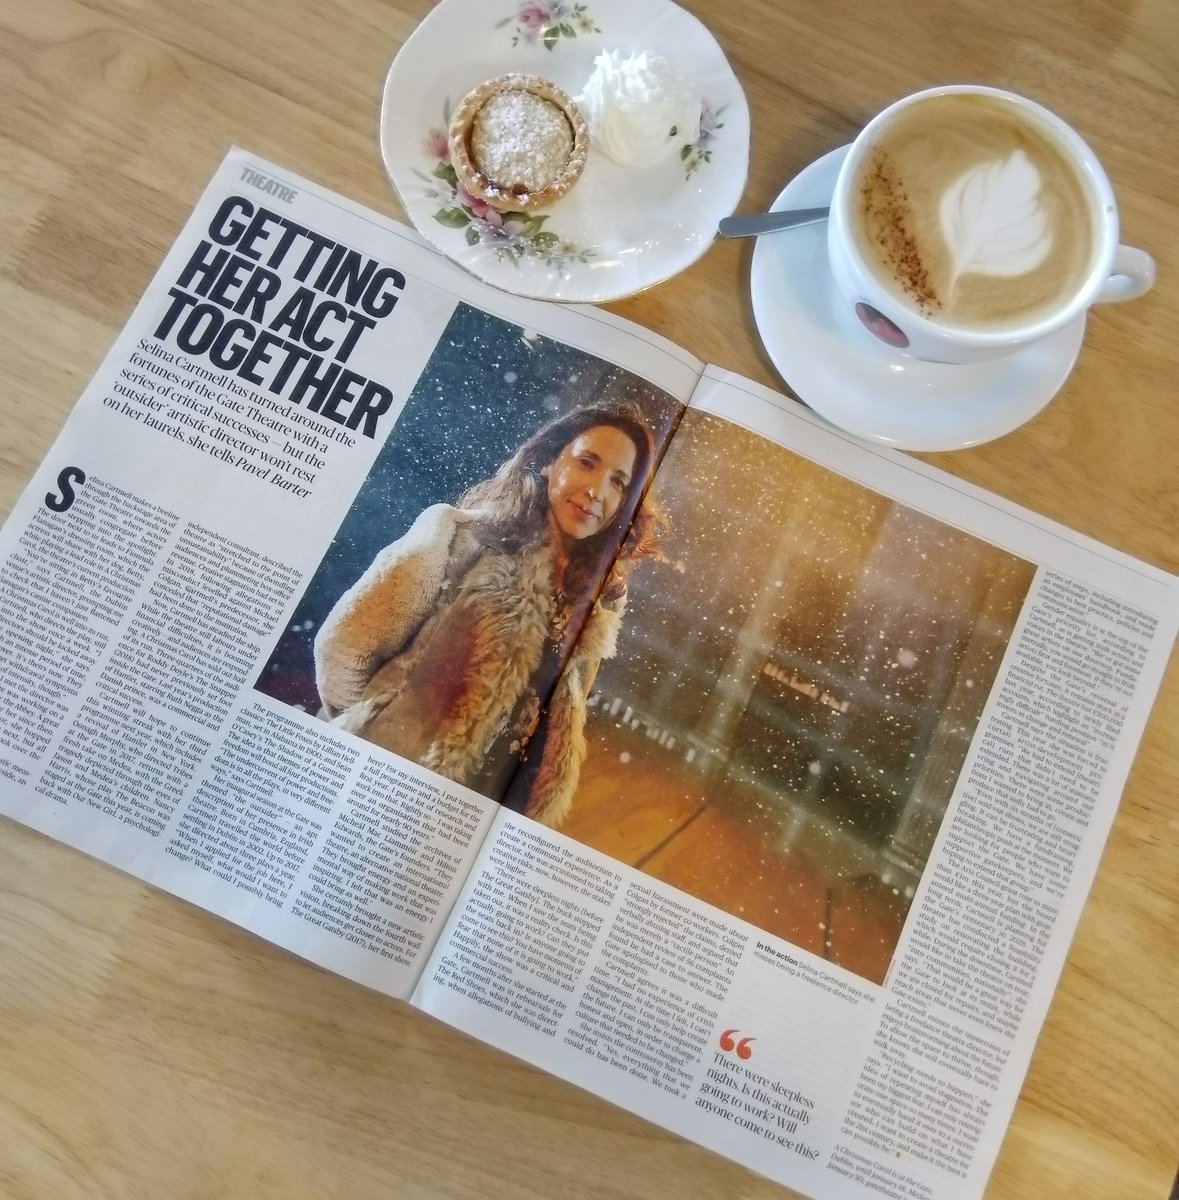 Coffee ✔️ Mince Pie ✔️ @ST_Culture ✔️ A really lovely interview with the Gate Theatres artistic director @cartmell_selina about our new season for 2020 #POWERandFREEDOM. Pick up a copy and get cosy on this wet Sunday ☔ #Season3 #Gate2020